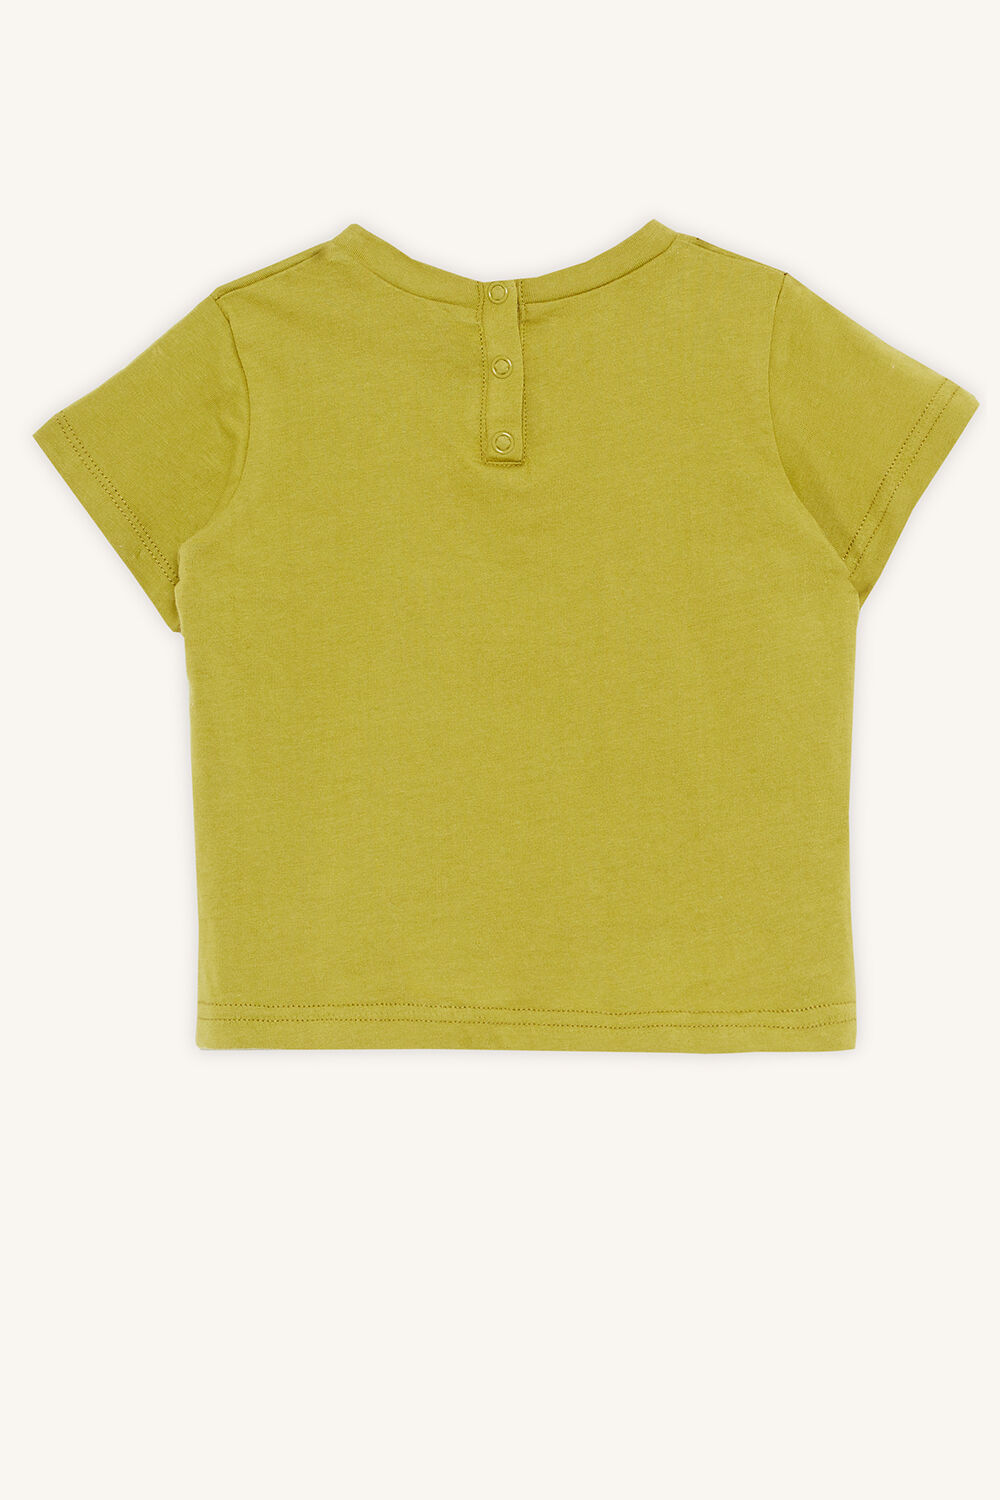 BABY BOY like a king tee in colour APPLE GREEN